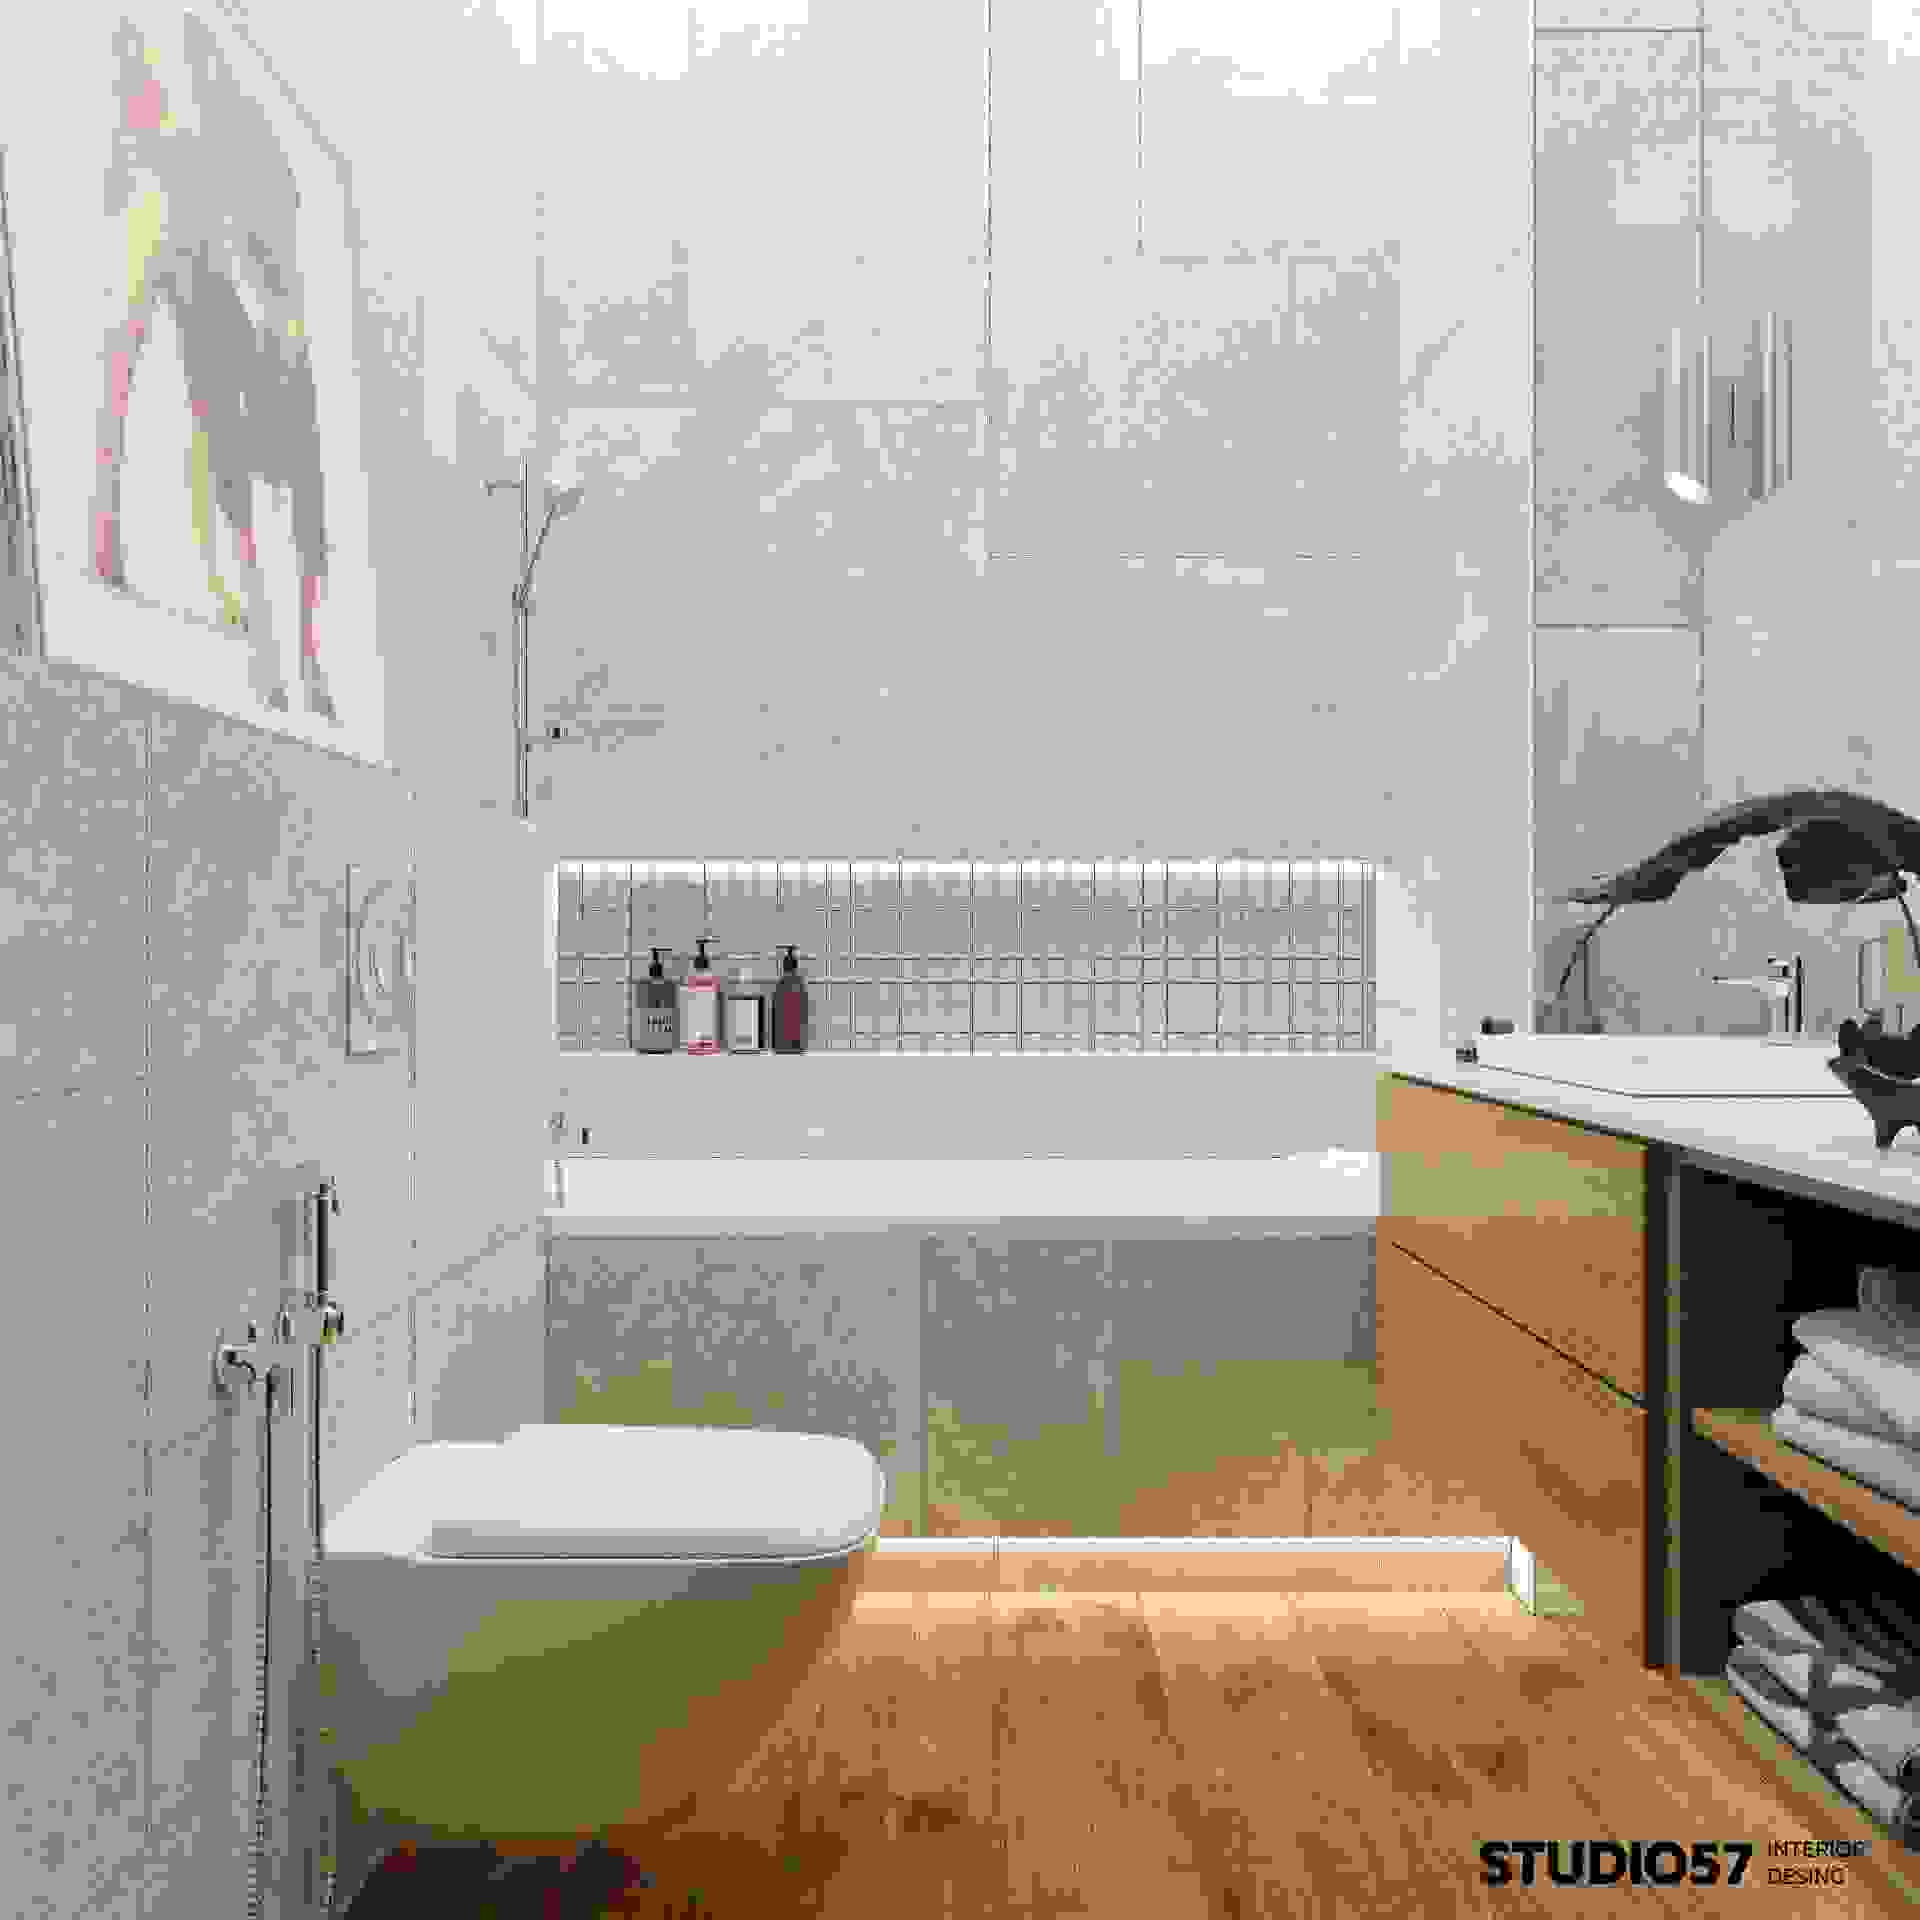 Design project of the bathroom with toilet